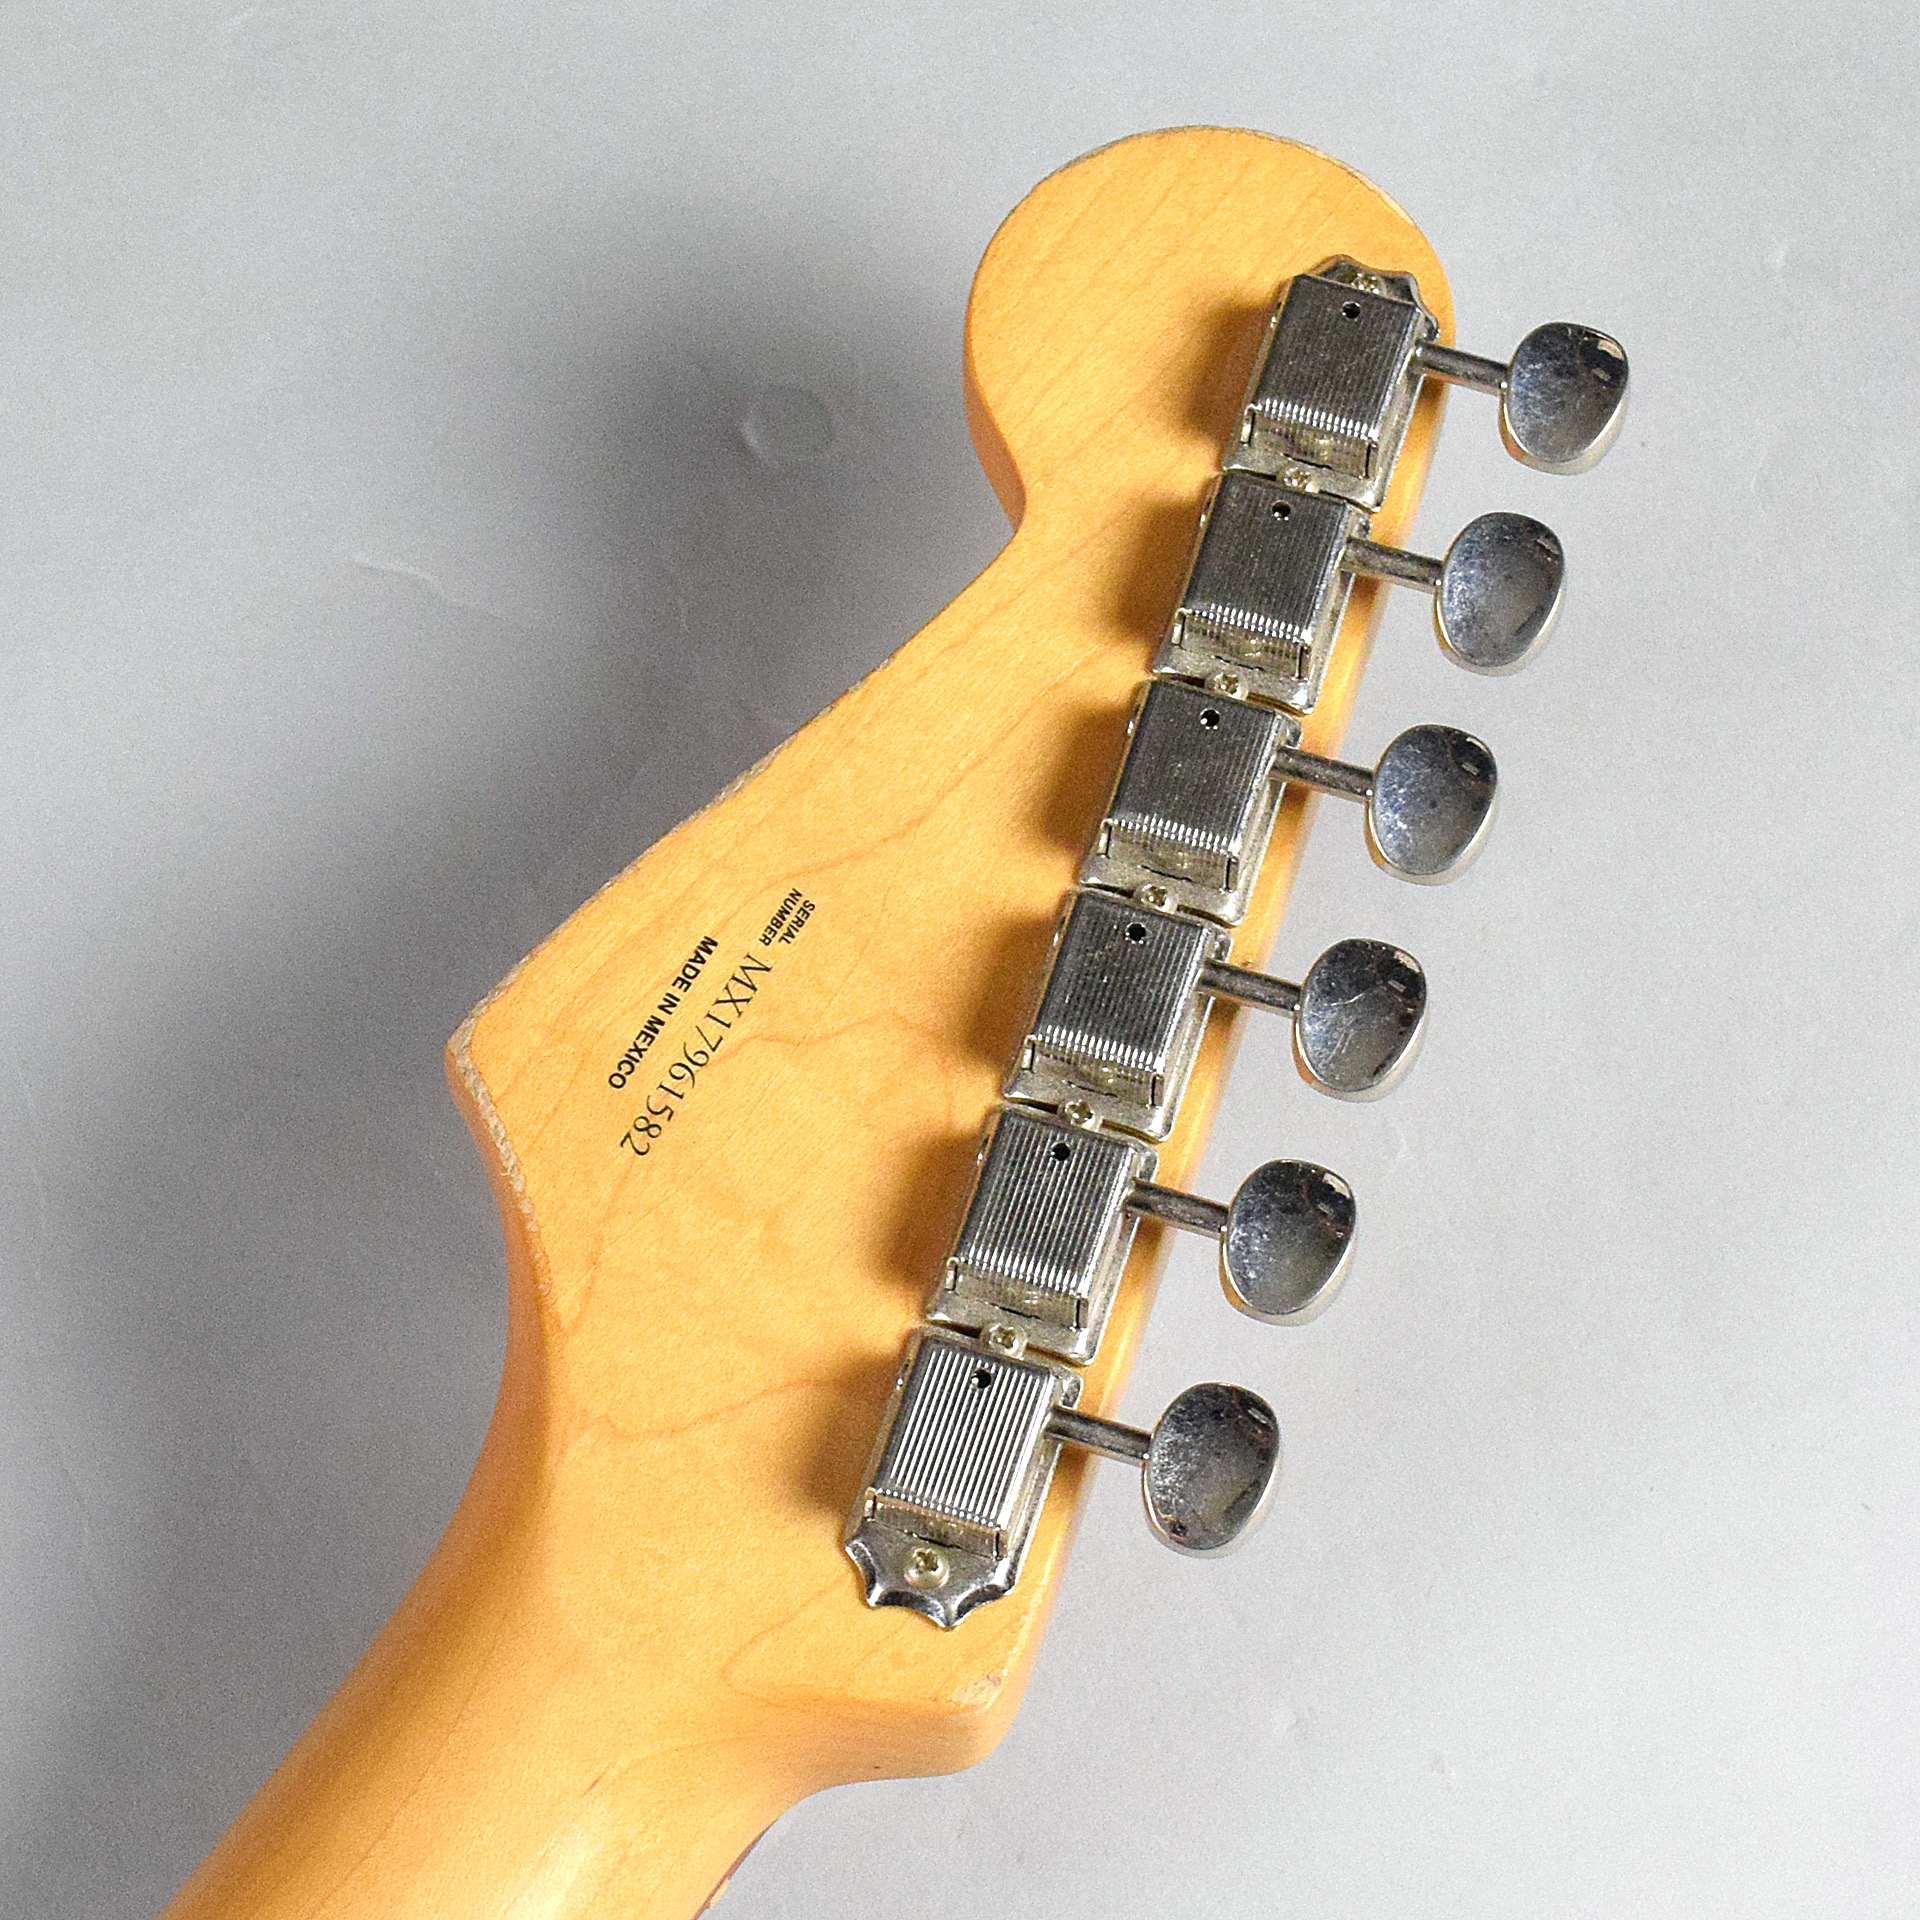 Road Worn '60s Stratocaster PFのケース・その他画像